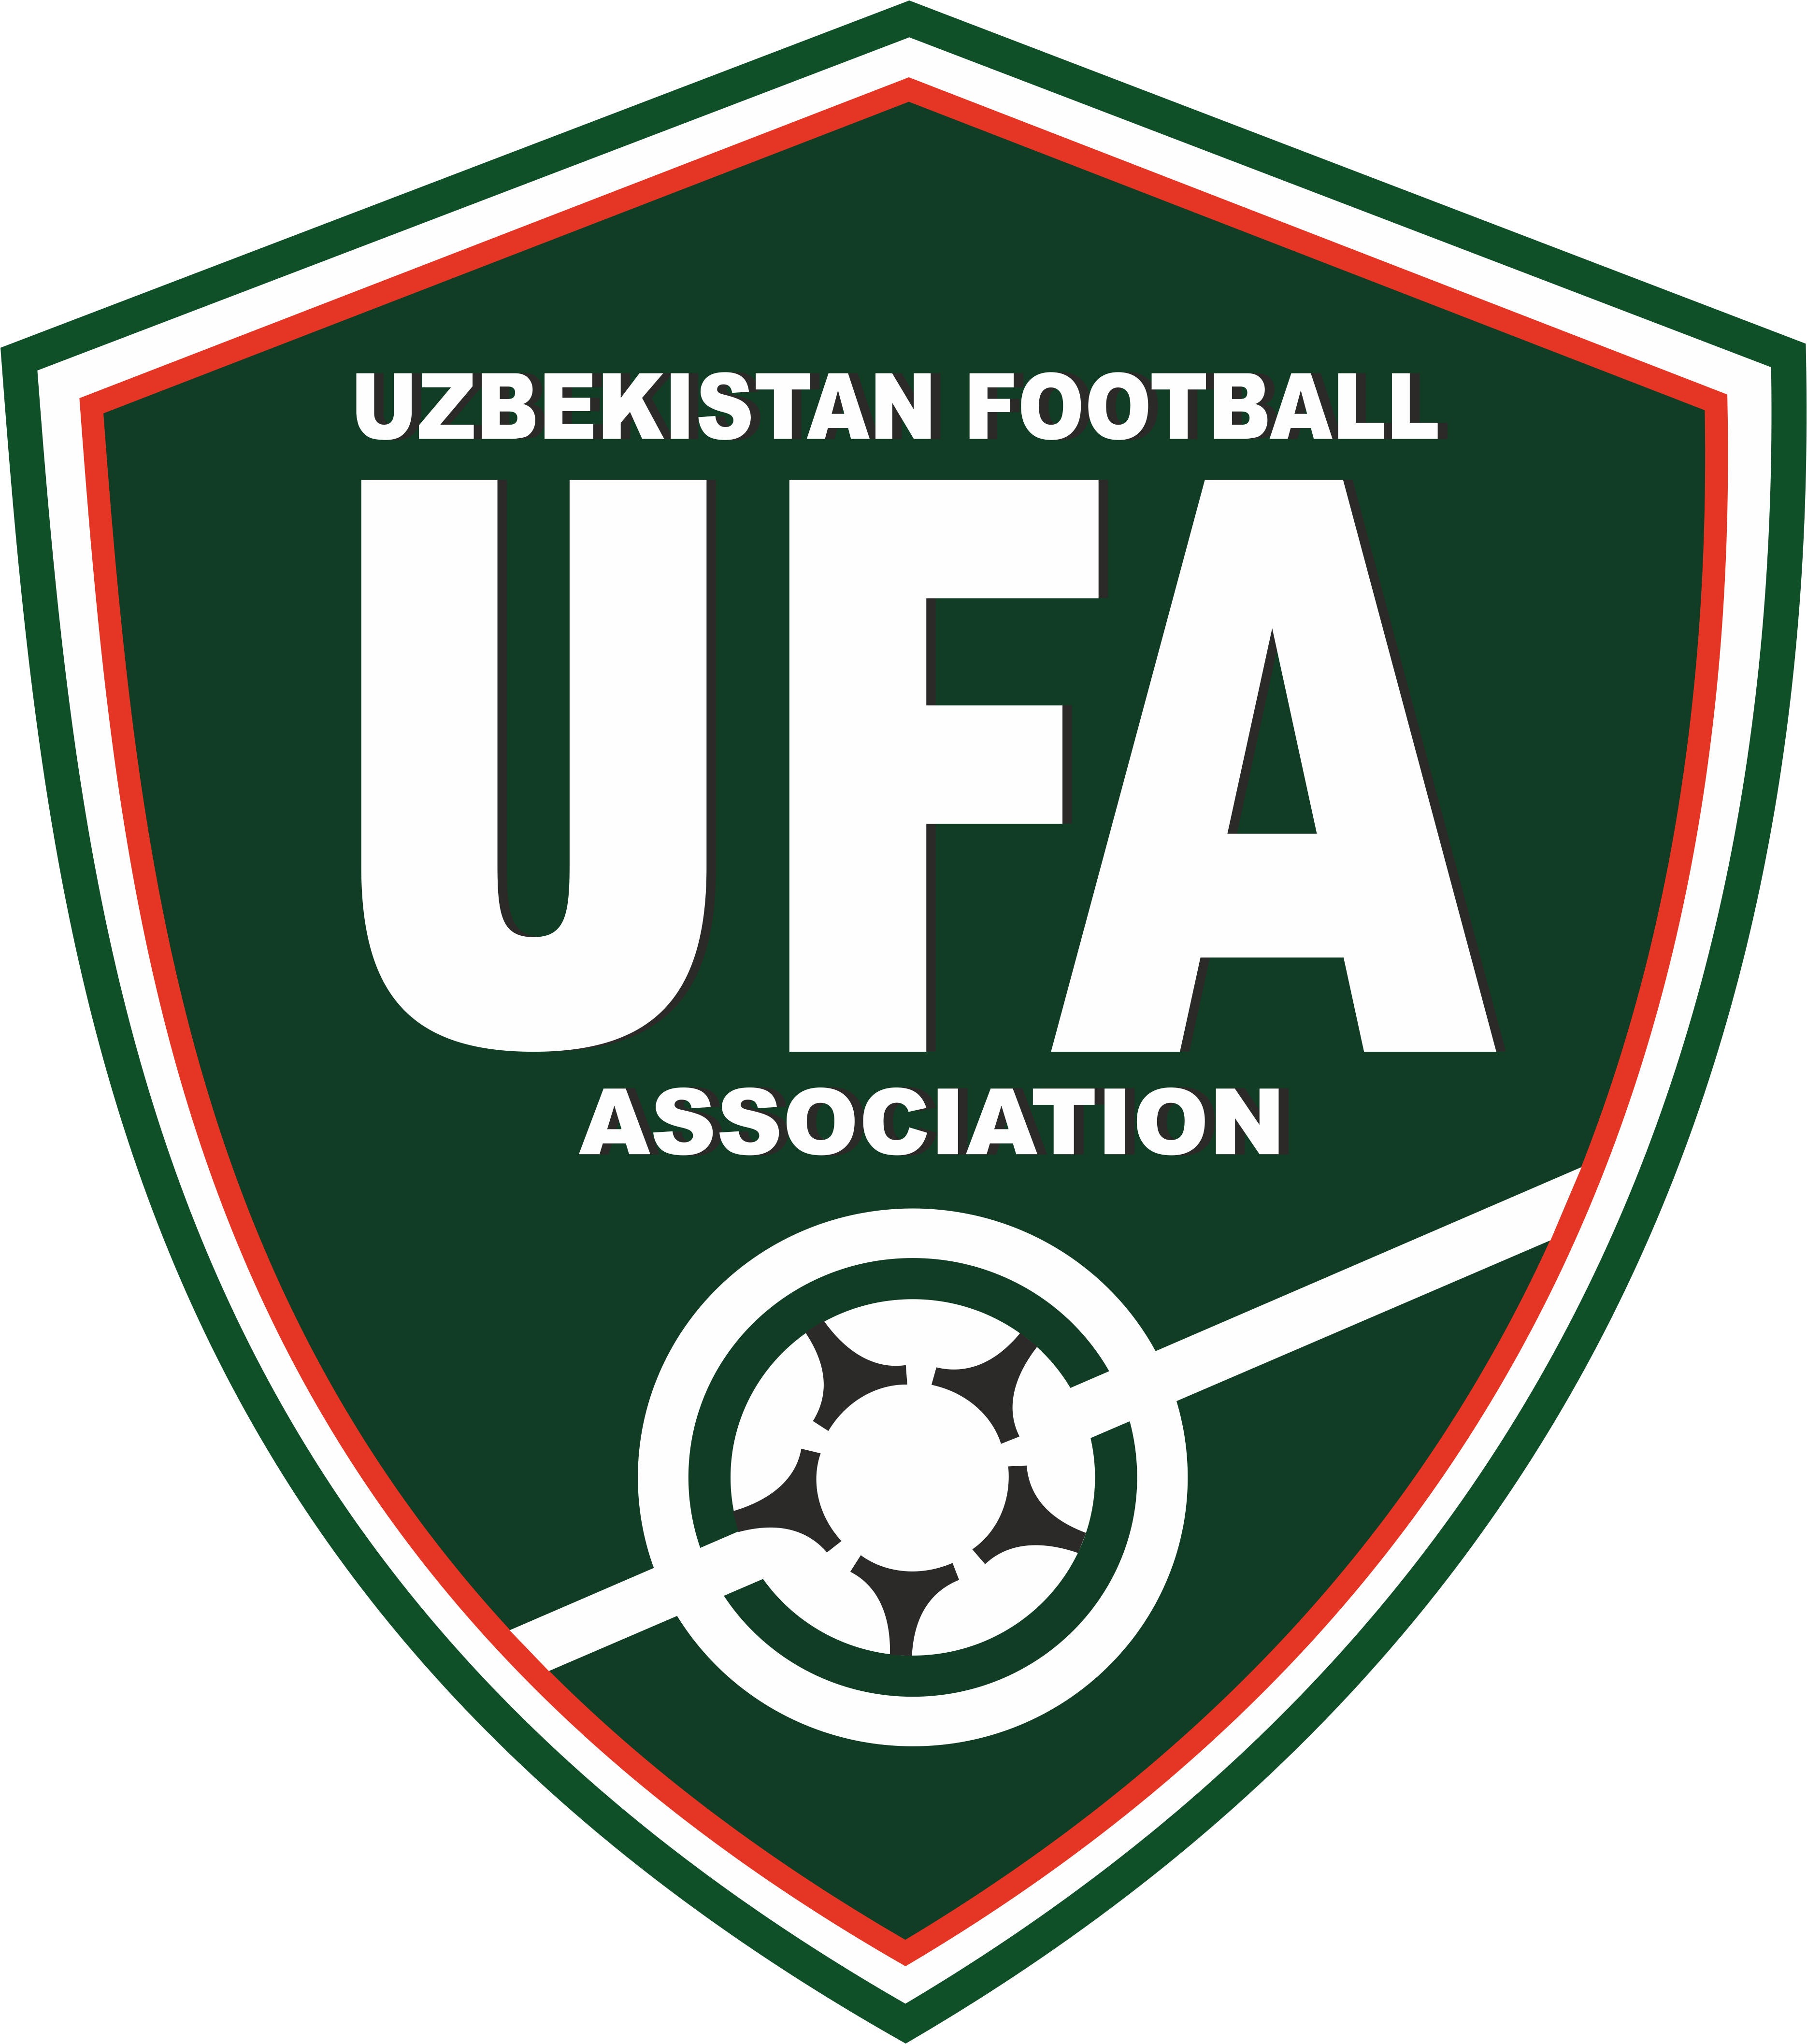 Uzbekistan Football Association